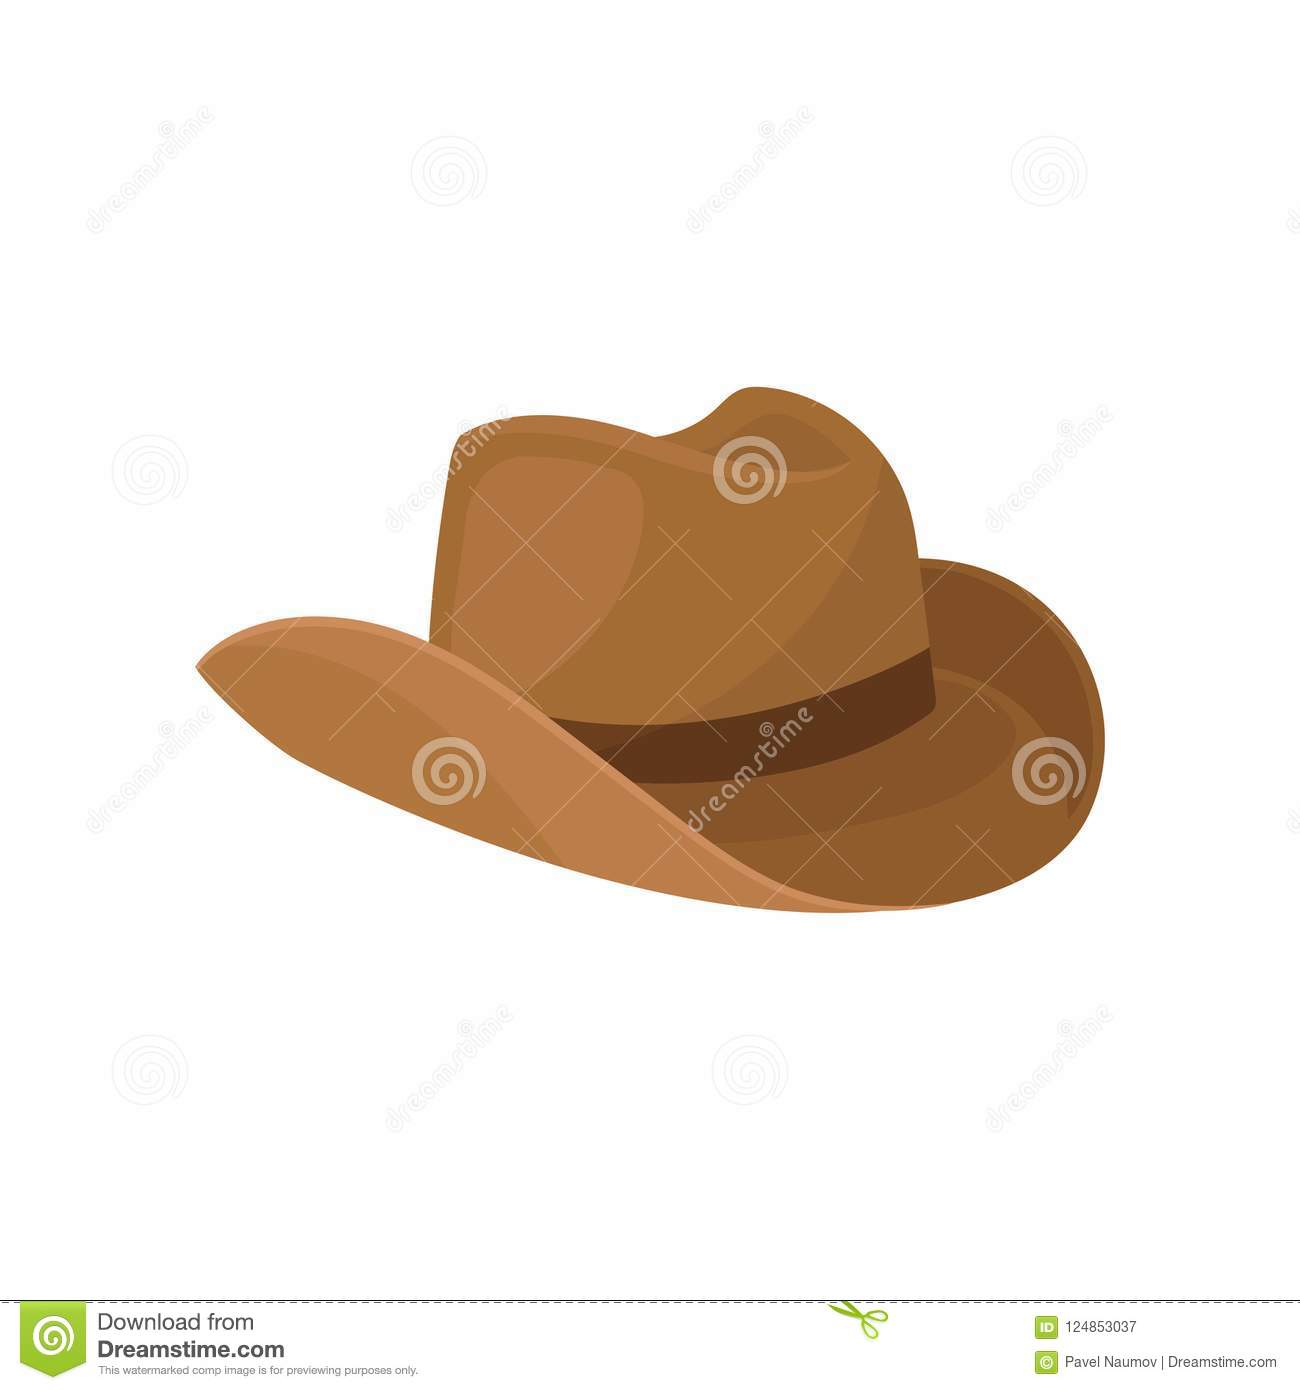 bc1b4400dc8 Cartoon style illustration of brown wide-brimmed cowboy hat. Stylish men  headwear. Male accessory. Element of costume. Fashion theme. Colorful flat  vector ...